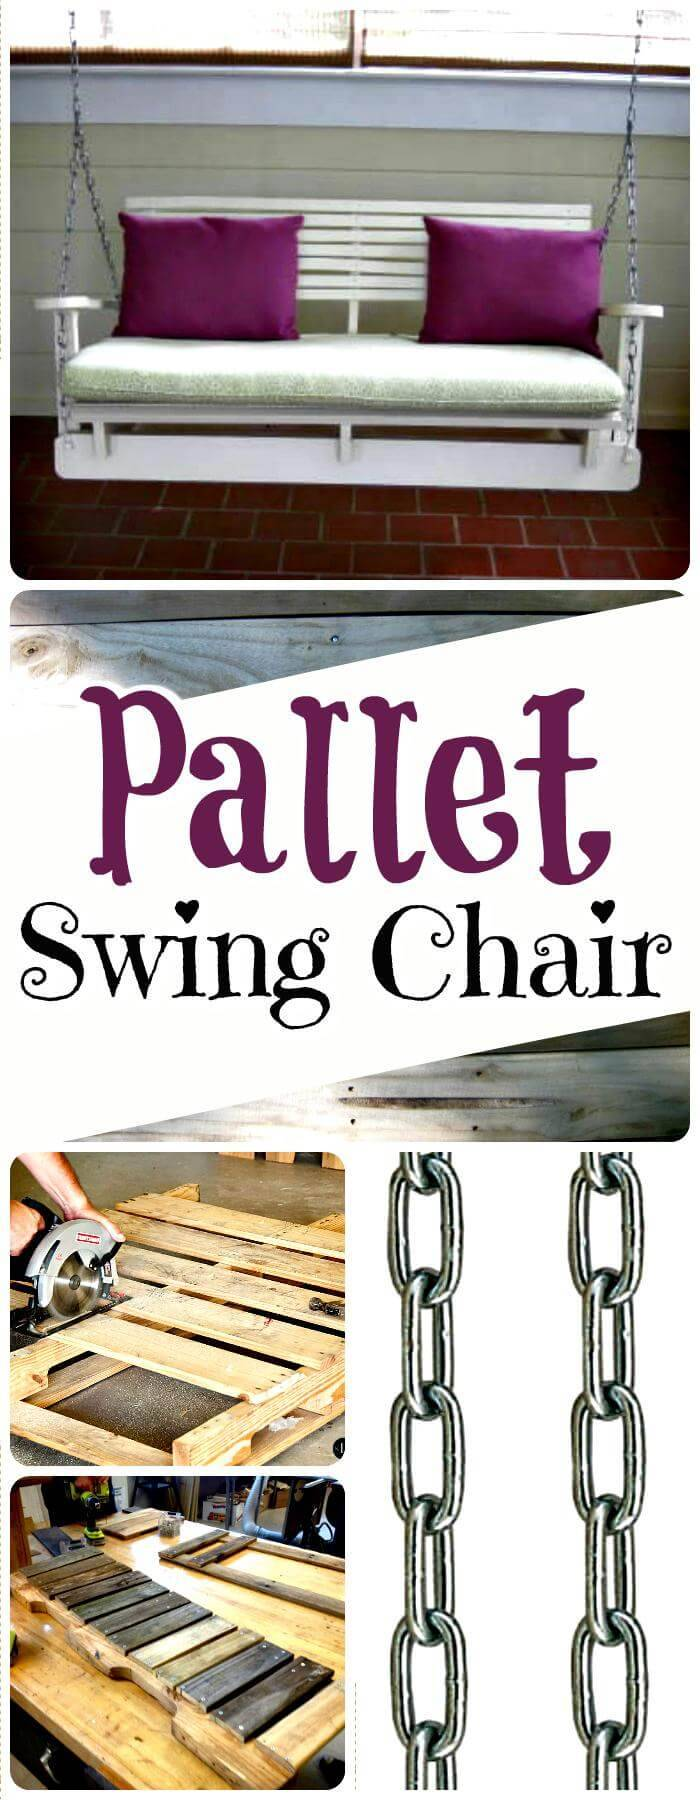 Wooden Pallet Swing Chair